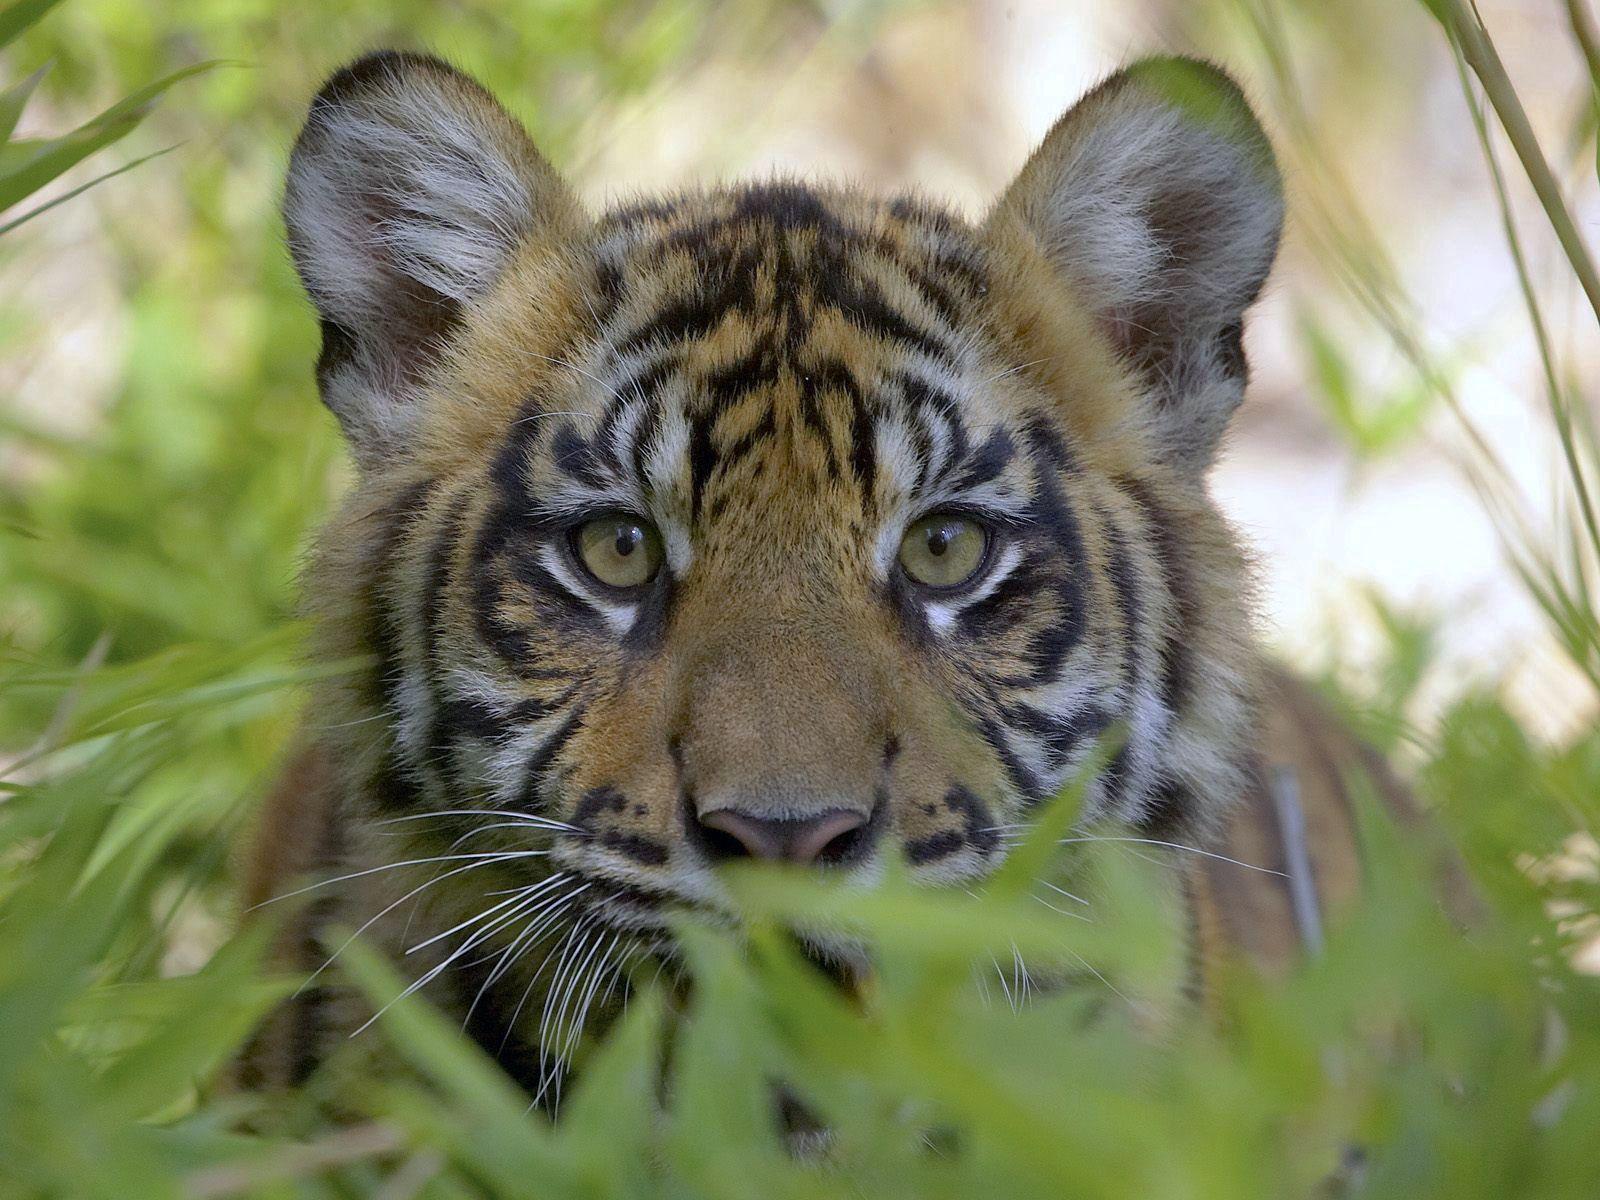 147145 download wallpaper Animals, Tiger, Muzzle, Grass, Hunting, Hunt screensavers and pictures for free